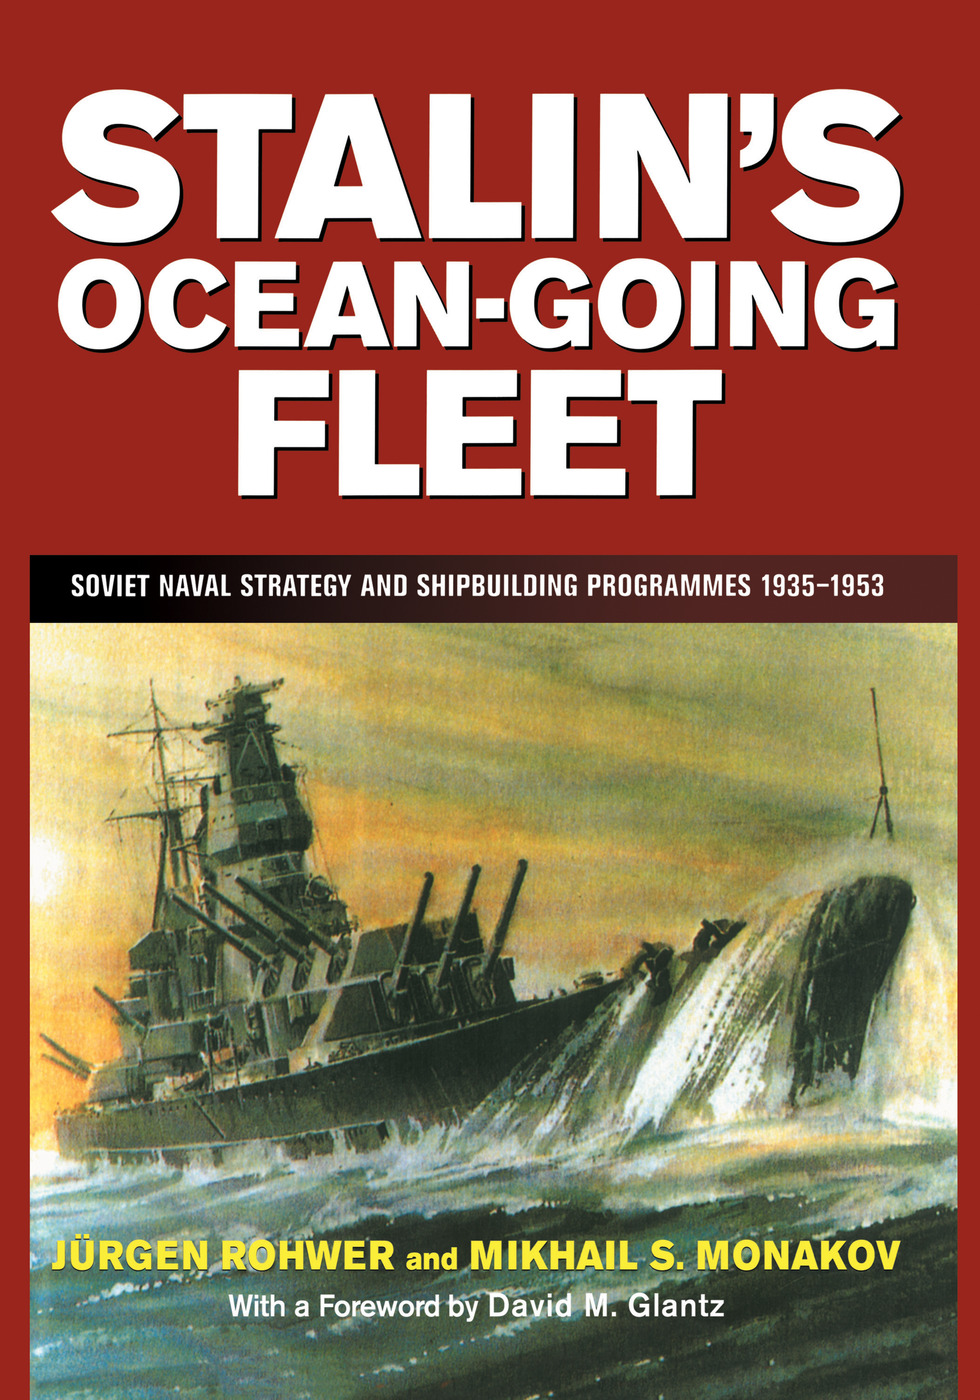 Stalin's Ocean-going Fleet: Soviet Naval Strategy and Shipbuilding Programs, 1935-53 book cover